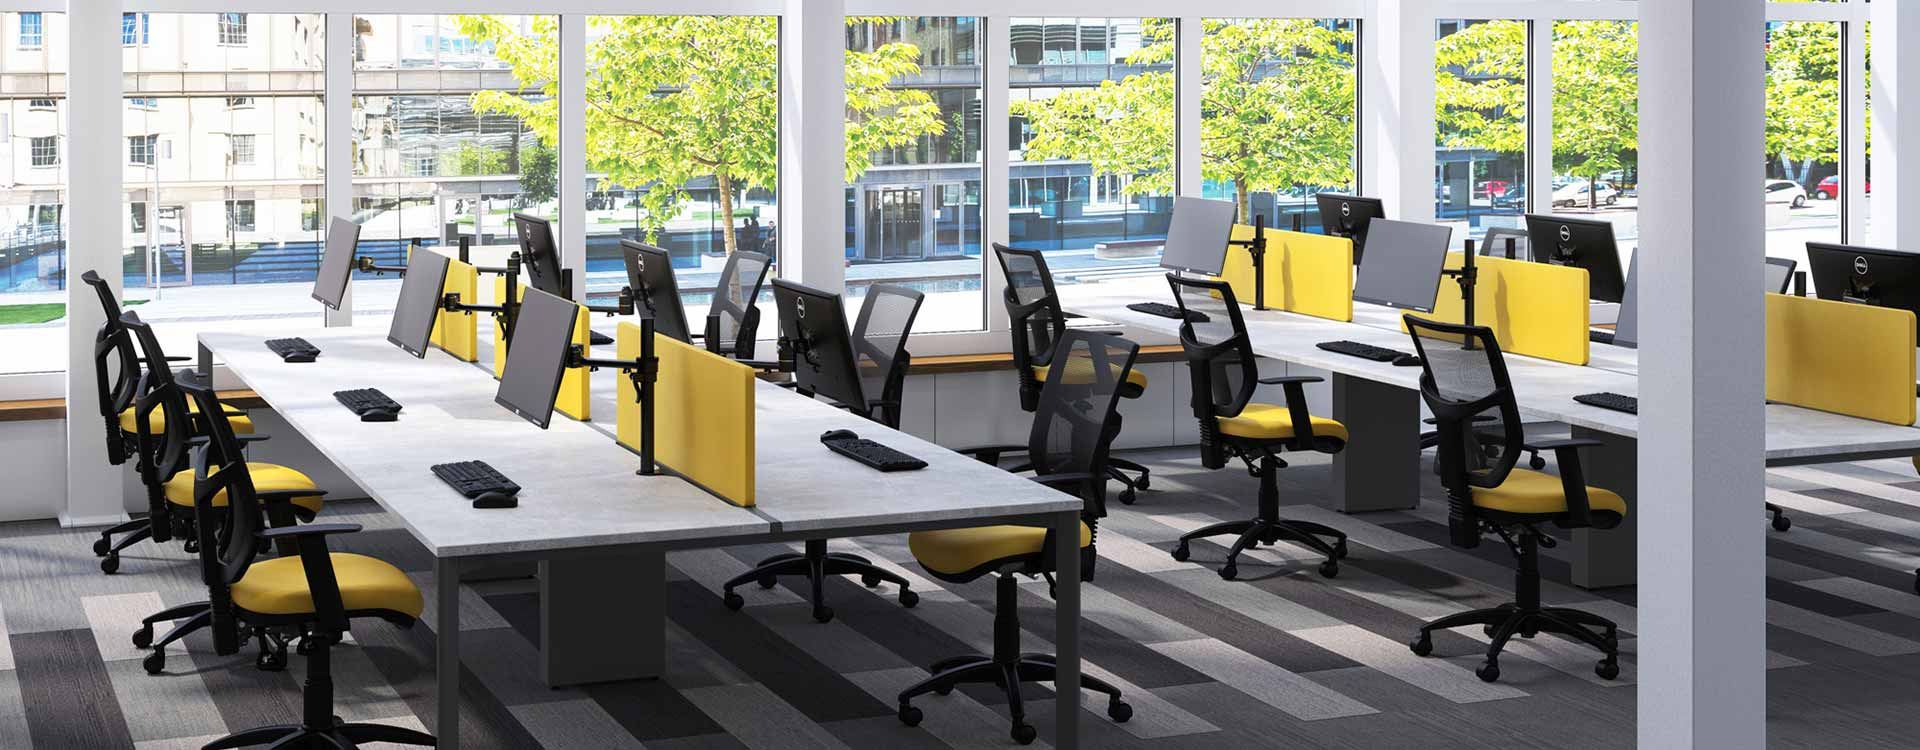 Office Desks & Seating Birmingam